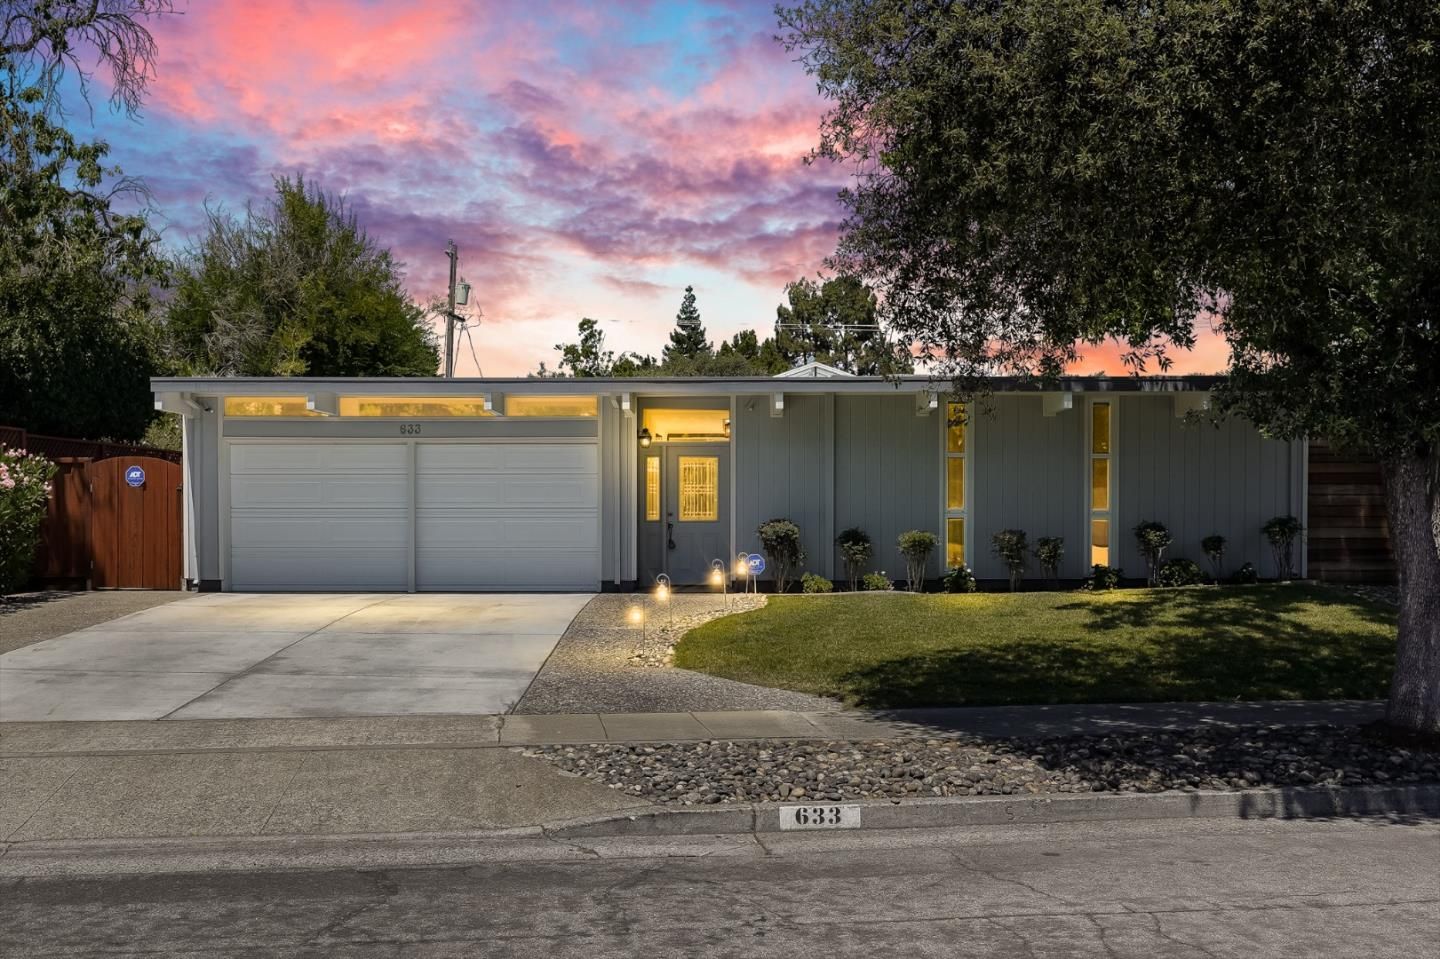 This peaceful Eichler home in Sunnyvale's Fairbrae neighborhood was completely remodeled in 2007. Leave Silicon Valley behind as you walk through the year-round open-air atrium with motorized sliding glass ceiling. Relax and entertain in a private backyard paradise with built-in swimming pool, waterfall and spa. Iconic Eichler features include: open beamed ceilings and floor to ceiling windows which bring the outdoors inside.  The sun-filled kitchen has granite countertops, island breakfast bar w/ wine fridge, gas stove, and new stainless steel appliances.  The primary bedroom also has its own bathroom, walk-in closet w/ built in shelving and access to the backyard.  The formal dining room opens into the formal living room with its gas fireplace and backyard access.  Other features: Separate laundry room, attached 2 car garage, high-tech A/C wall units and cozy radiant heated floors.  Located on a quiet street, close distance to the Fairbrae Swim & Racquet Club, Las Palmas Park.